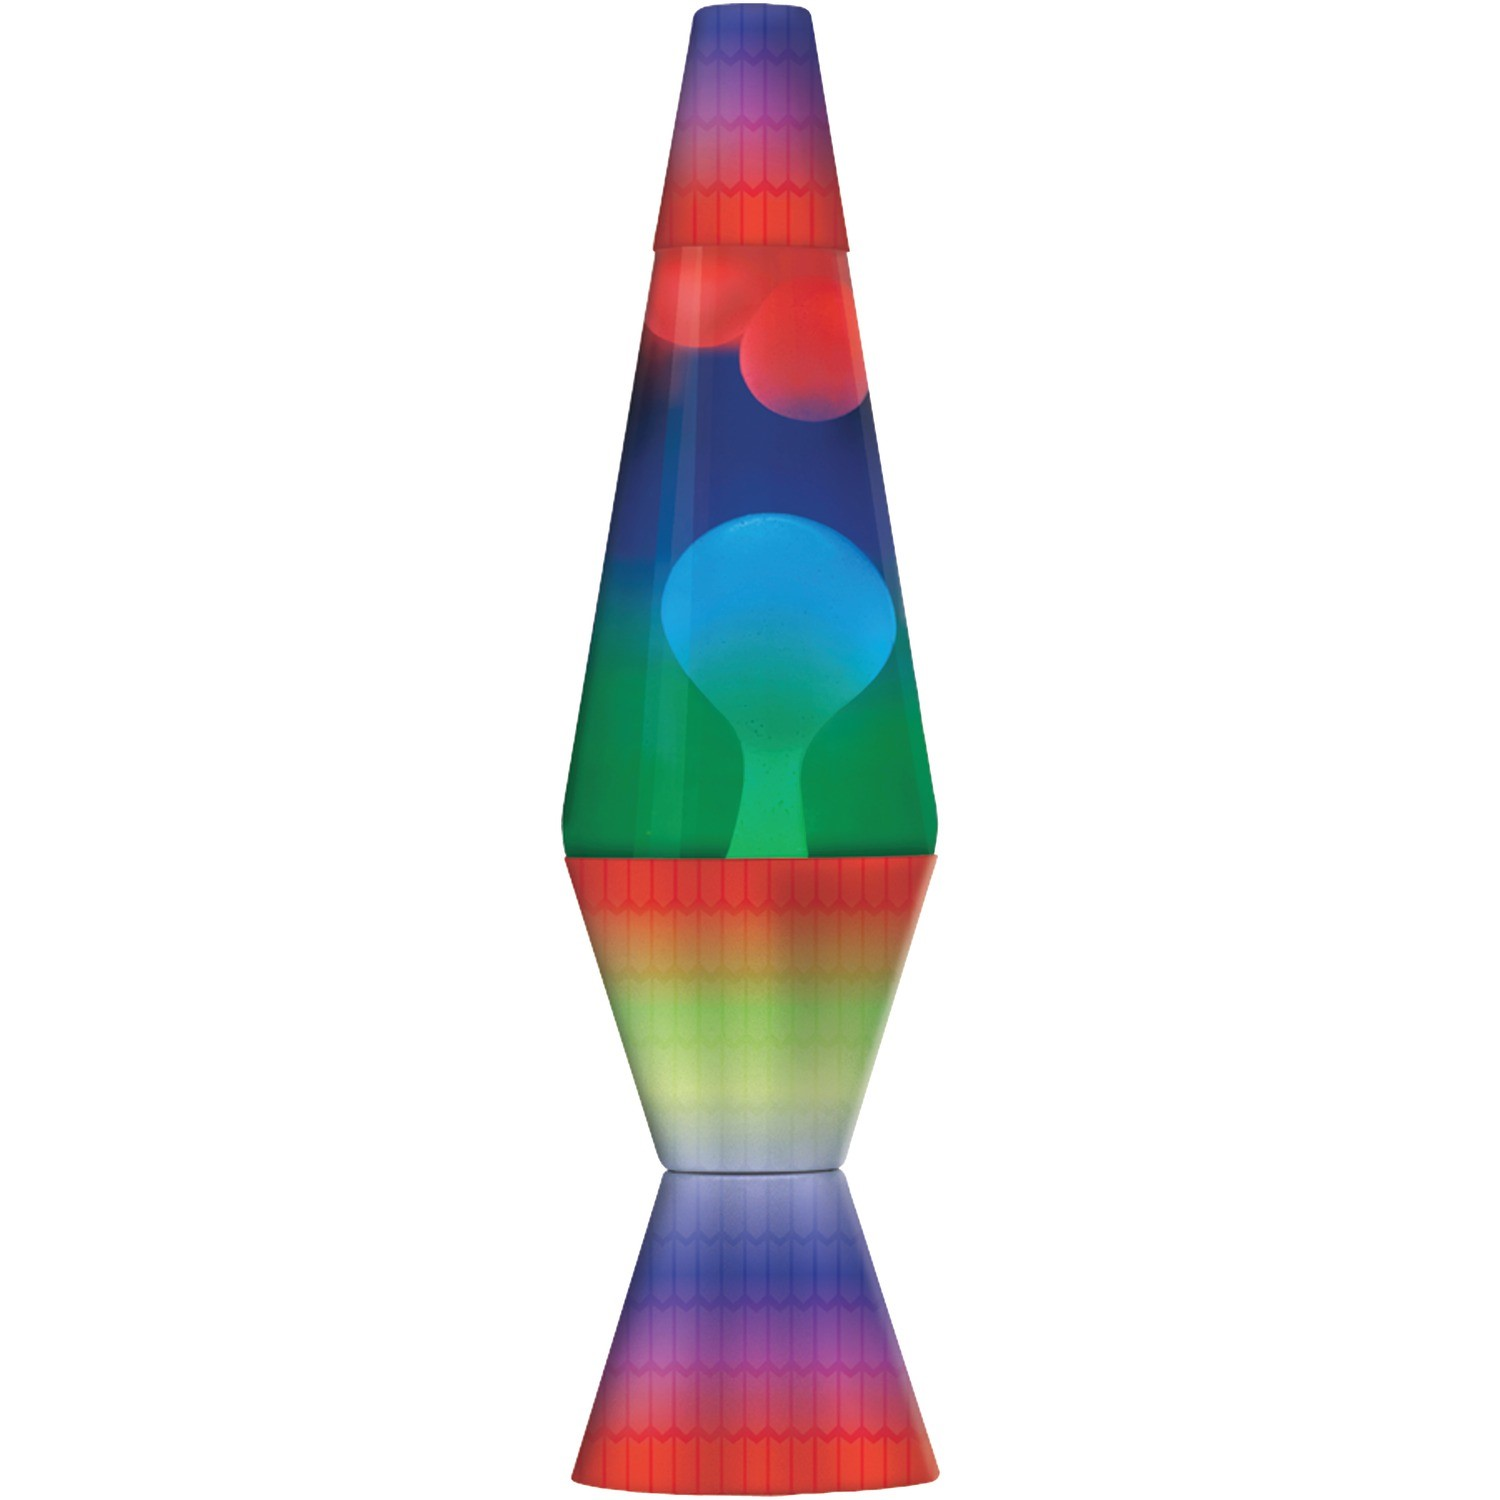 Click here to buy Lava the Original 14.5-Inch Colormax Lamp with Rainbow Decal Base by Lava.